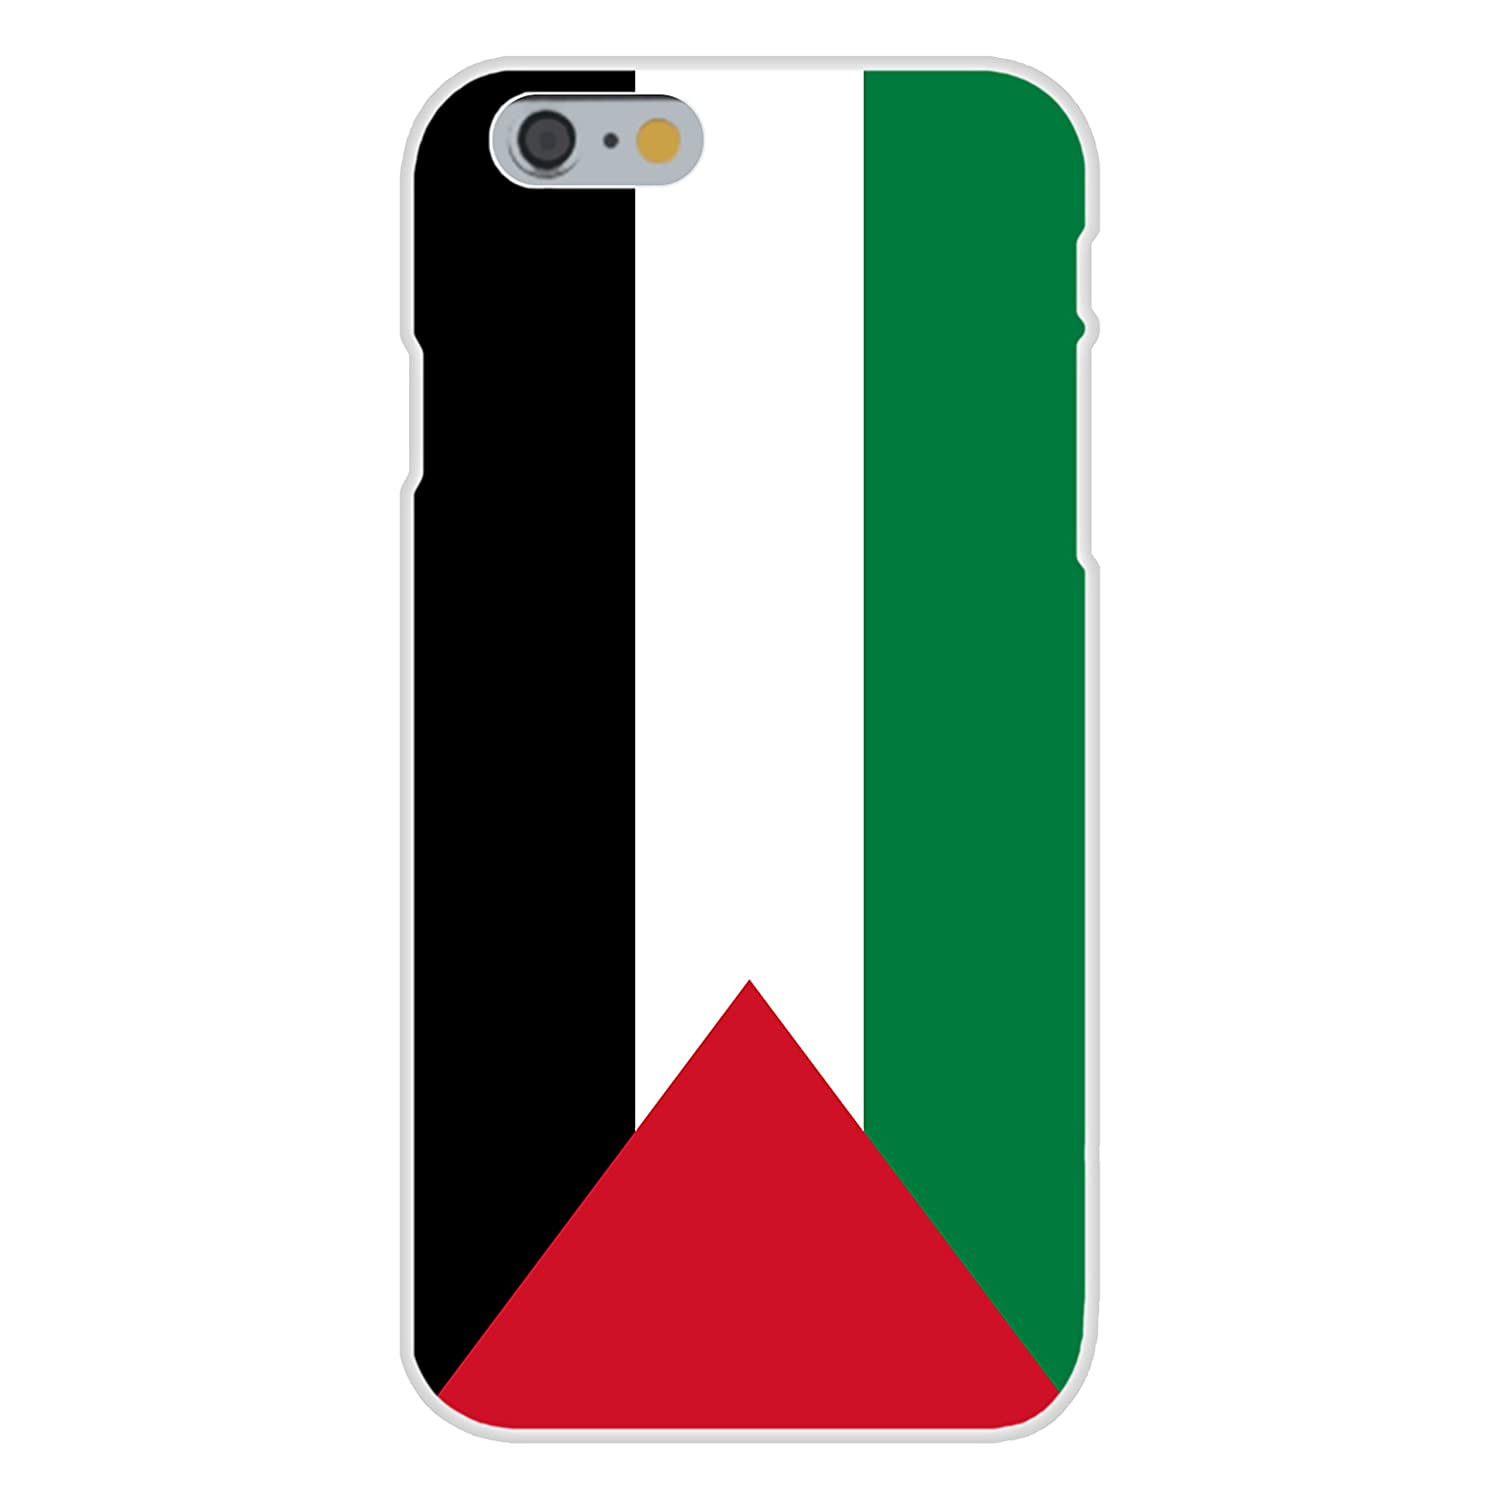 Can, cellular phones in gaza strip